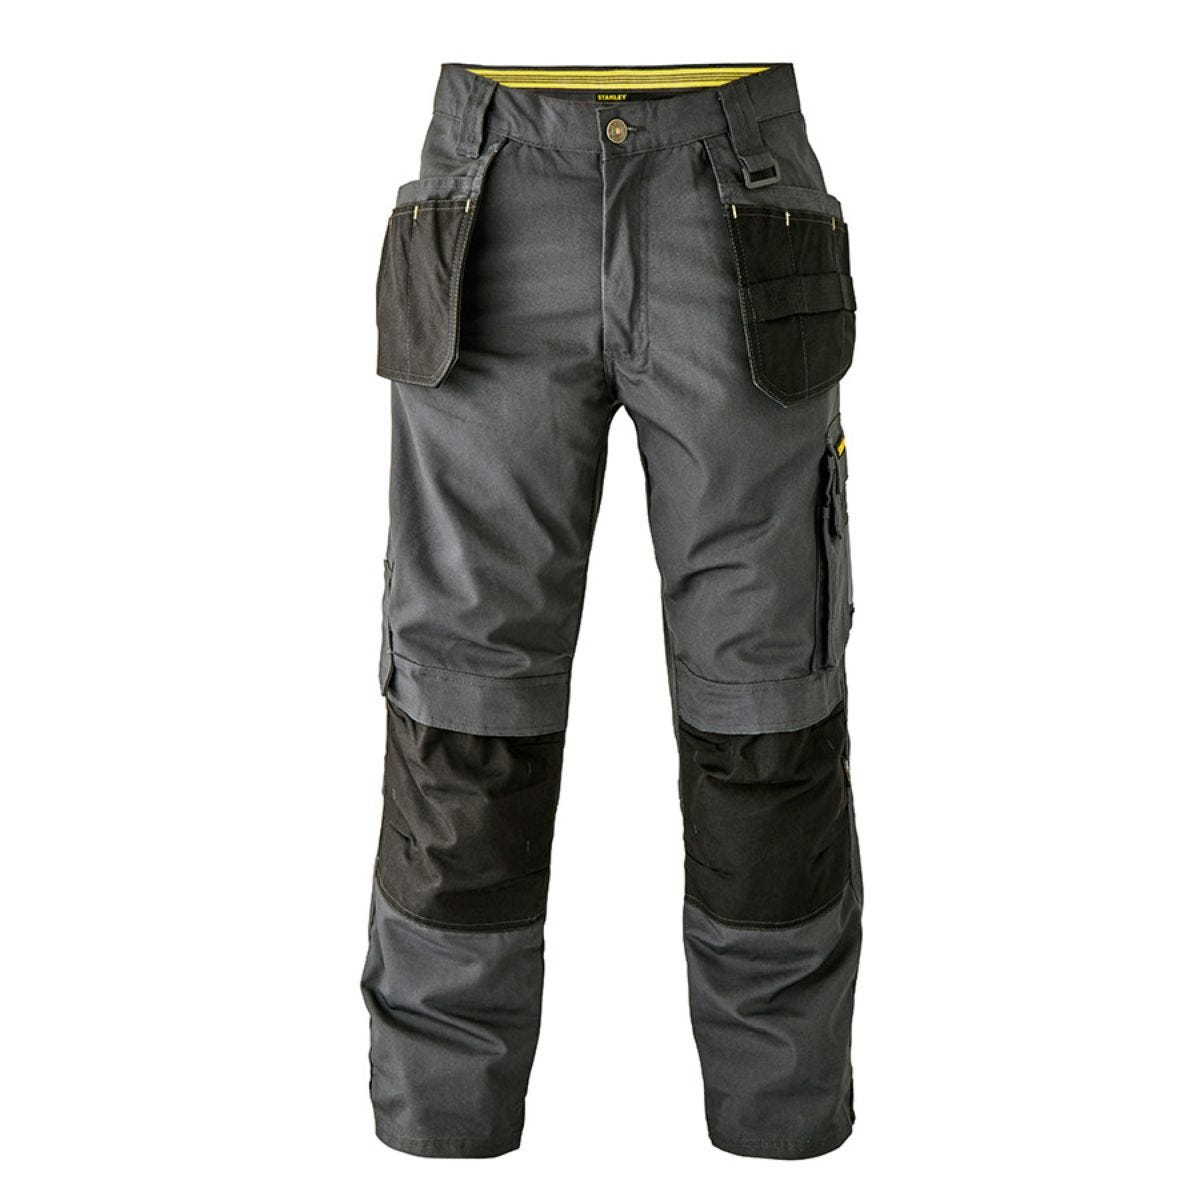 Stanley Newark Tradesman Work Trousers with Knee Pad Pouches - 33 Inch Leg - Grey